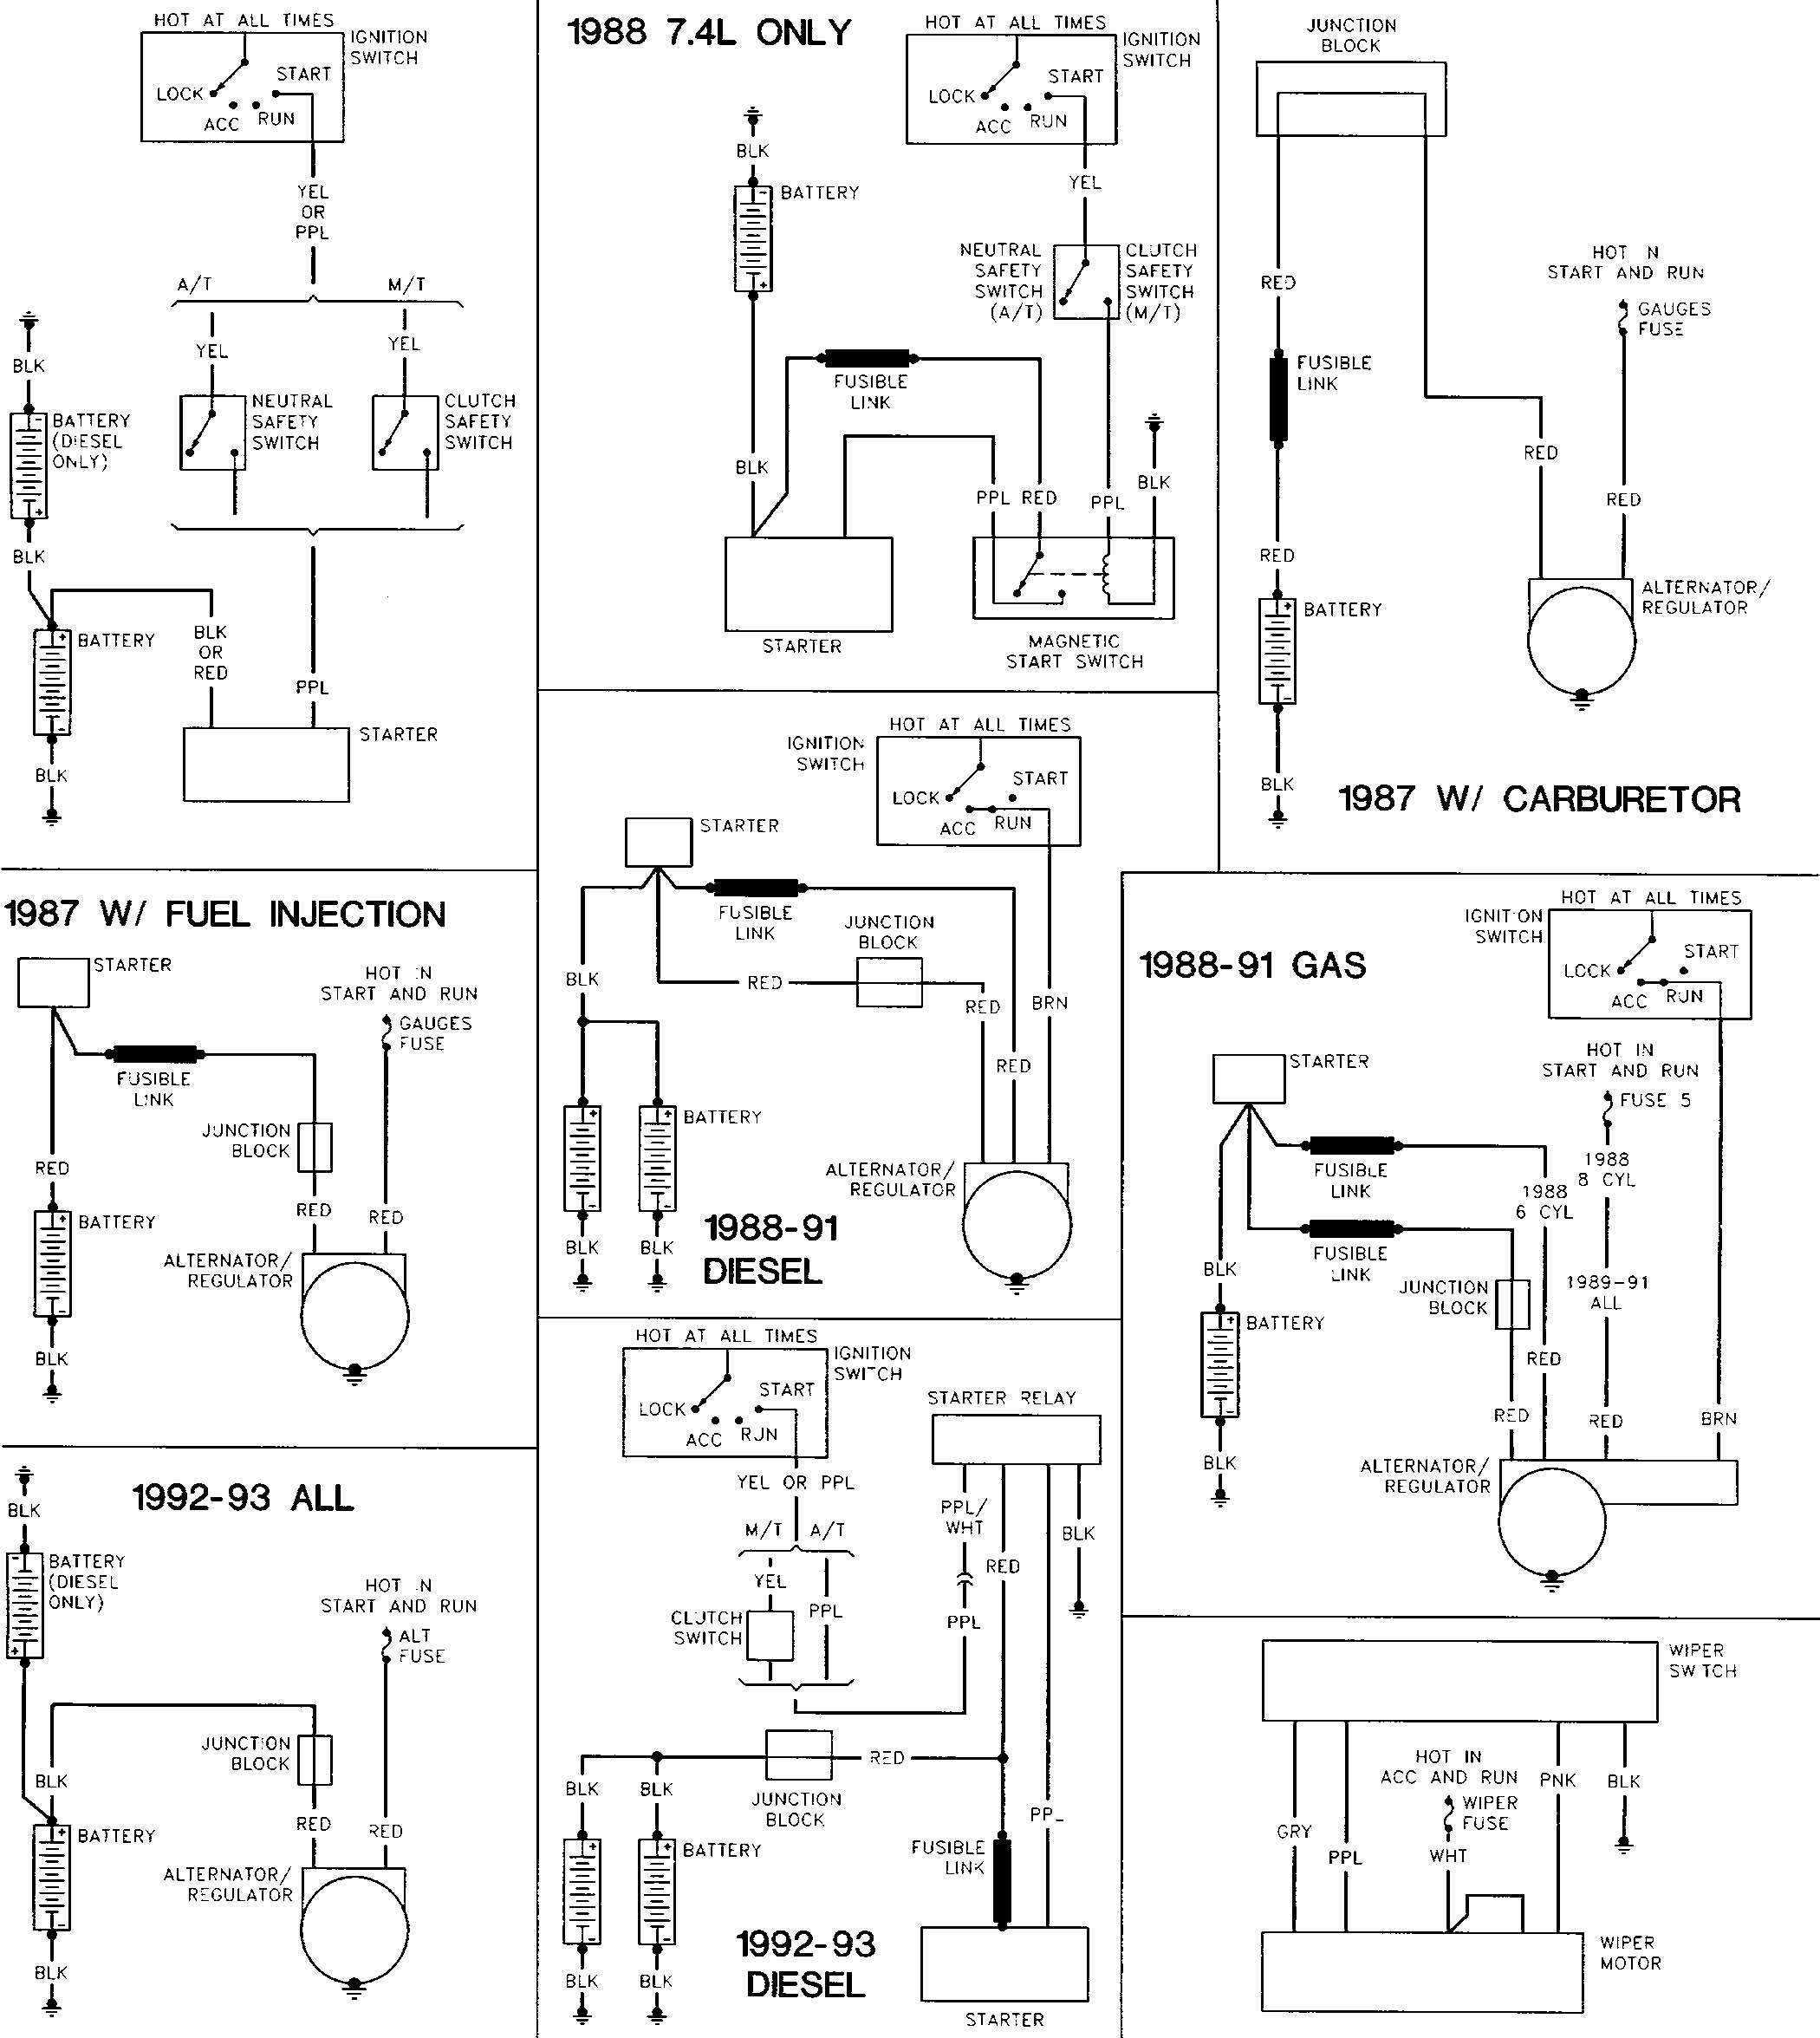 Coachmen Rv Wiring Diagrams - Wiring Diagram G8 on truck camper wiring diagram, rv battery hook up diagram, dual battery charging diagram, rv battery schematic, boat battery diagram, rv battery hook up double, dual battery hook up diagram, 12 volt camper wiring diagram, fleetwood rv battery diagram, capacitor hook up diagram, dual battery switch diagram, double light switch diagram, solar panel hook up diagram, rv house battery wiring, battery connection diagram, pioneer car stereo wiring colors diagram, sump pump float switch diagram, motorhome battery diagram, extra view dstv installation diagram, dual xd1222 wiring harness diagram,